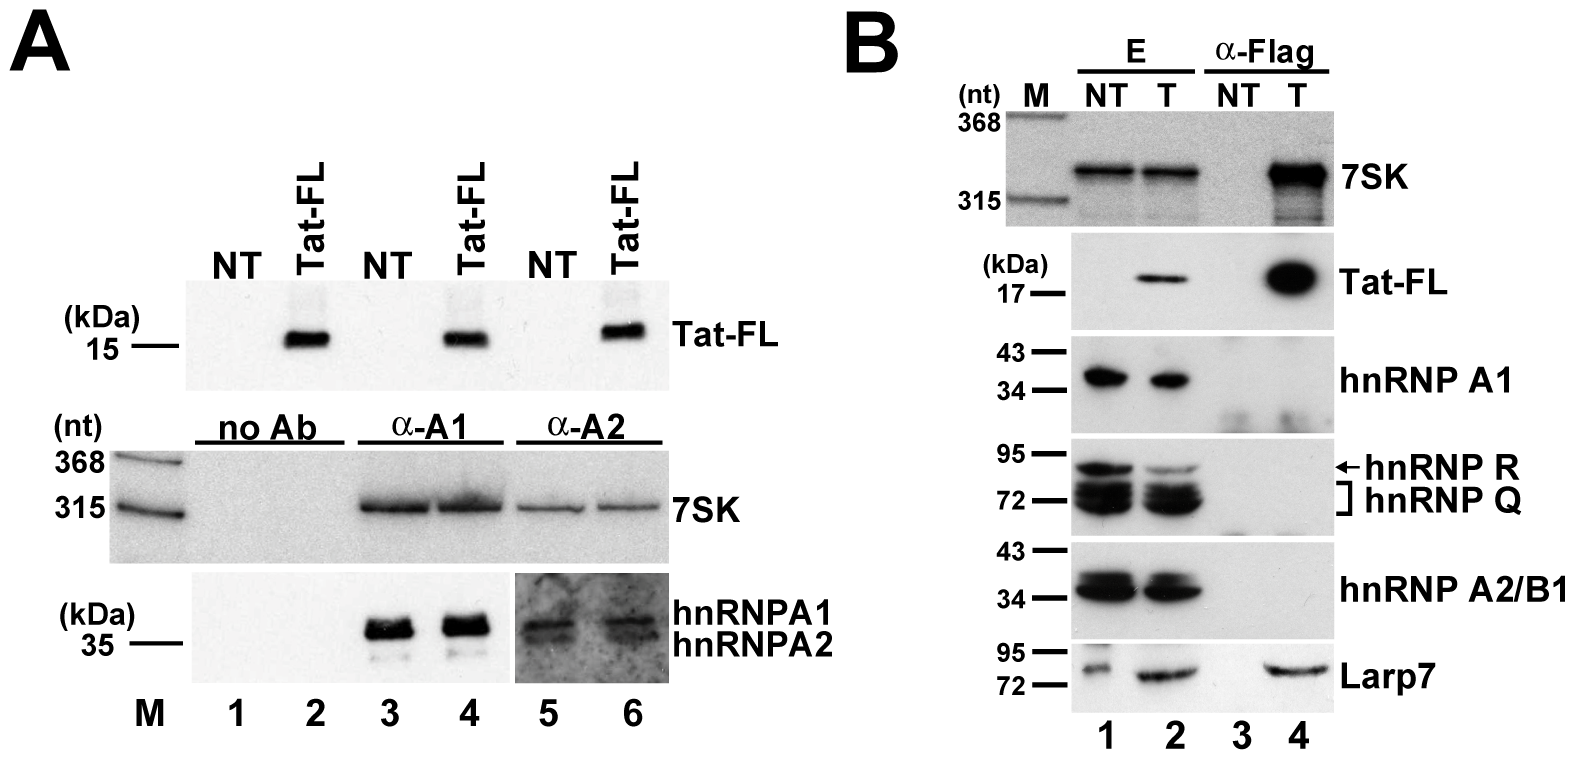 The 7SK/Tat snRNP does not interact with hnRNP proteins.